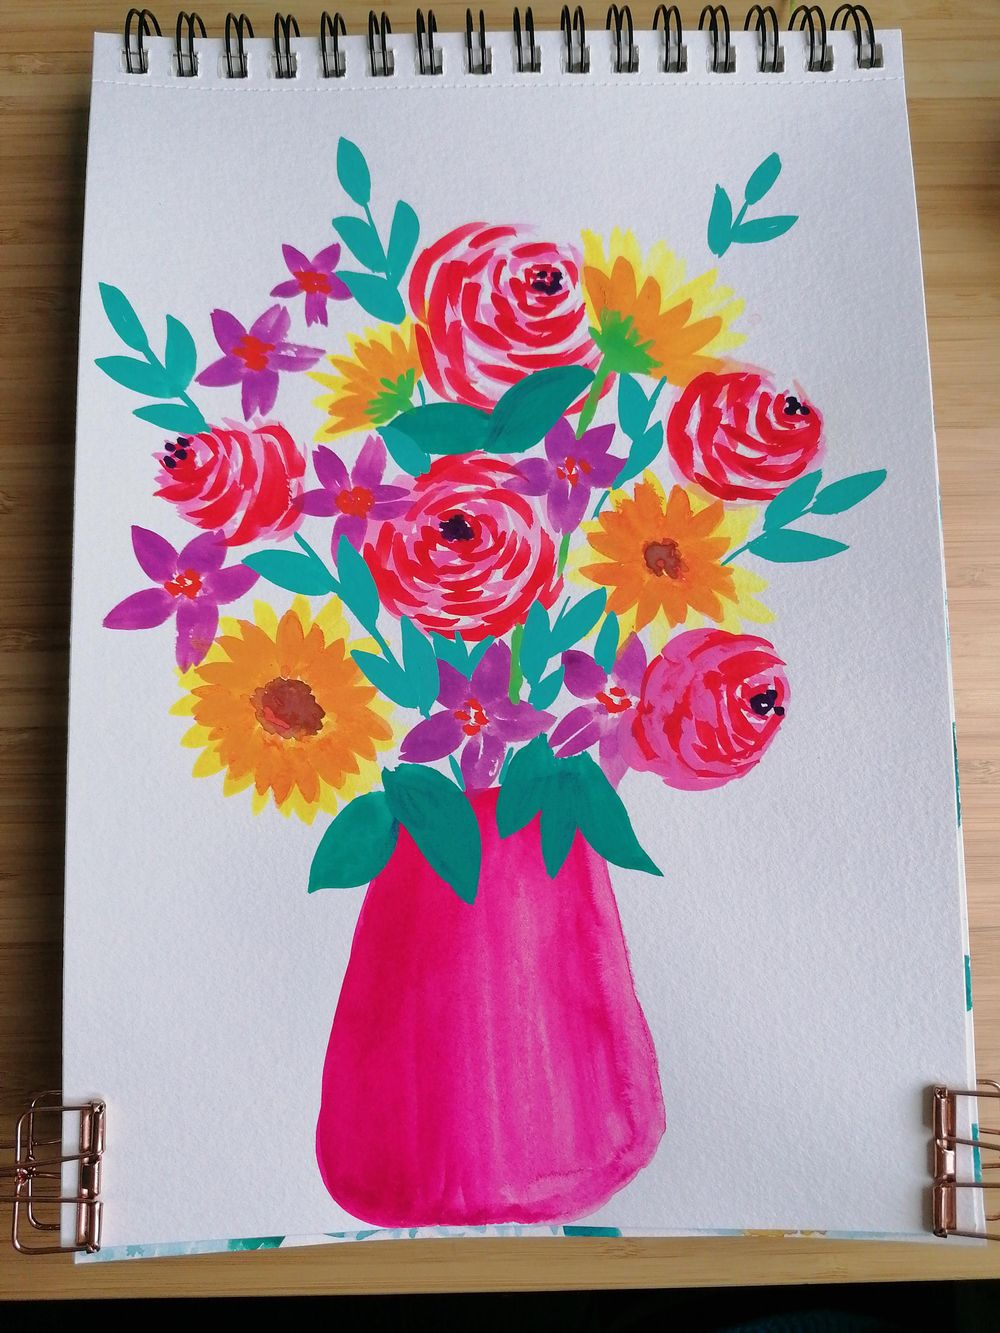 Flower bouquet with gouache - image 2 - student project